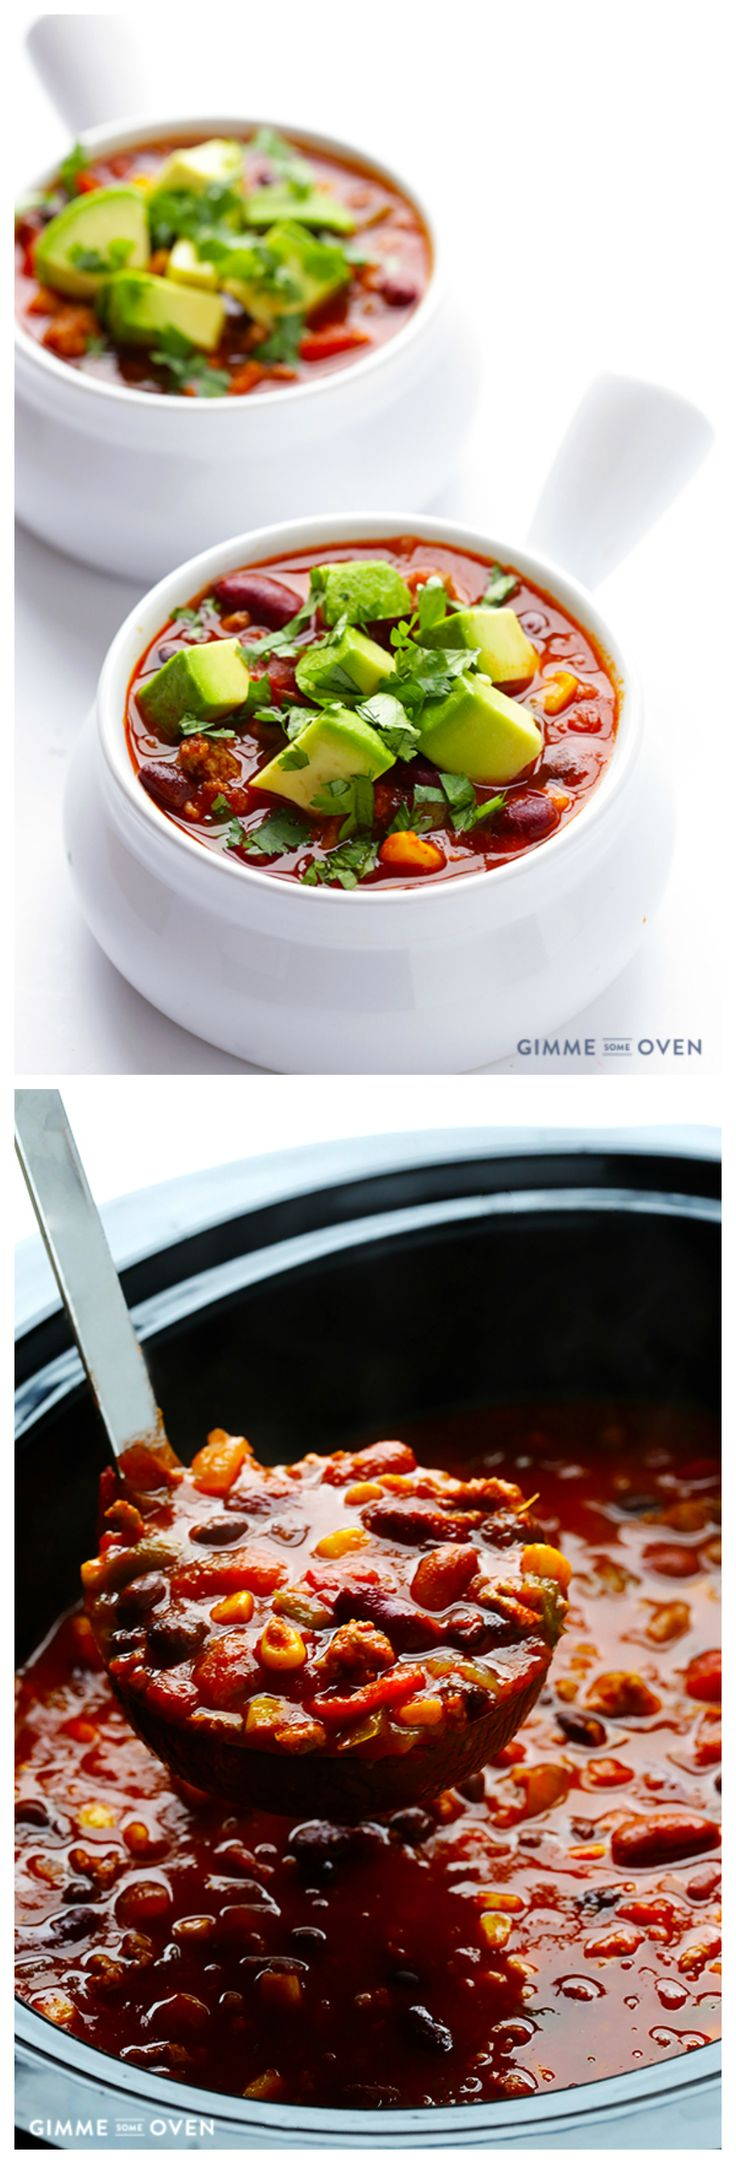 Slow Cooker Taco Turkey Chili by gimmesomeoven: All you need is 15 minutes of prep for this delicious, comforting, and healthier chili. #Chili #Turkey